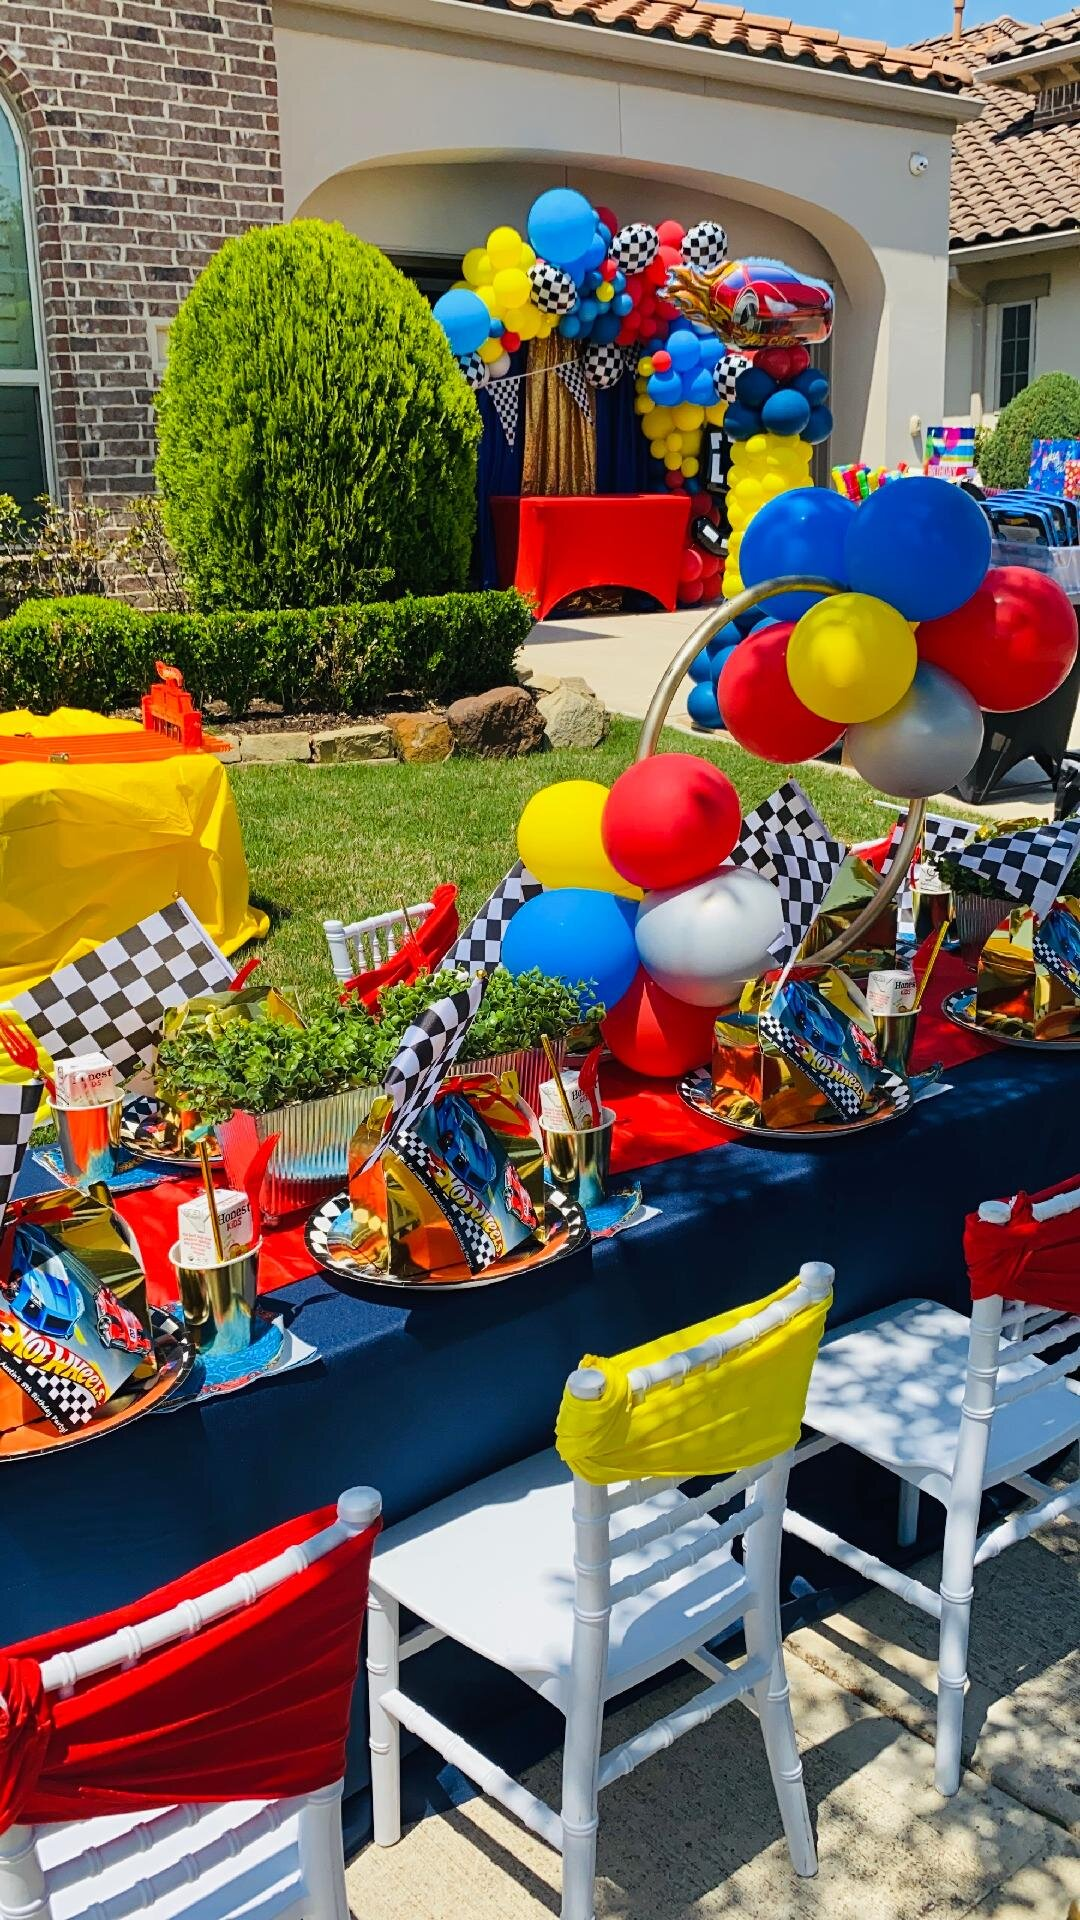 Houston Children S Birthday Party Places And Ideas For Kids Parties Home Birthday Parties Delivered Rainbows Wishes Houston Kids And Children S Birthday And Event Party Planner Kid S Parties Chair Rentals Decorators